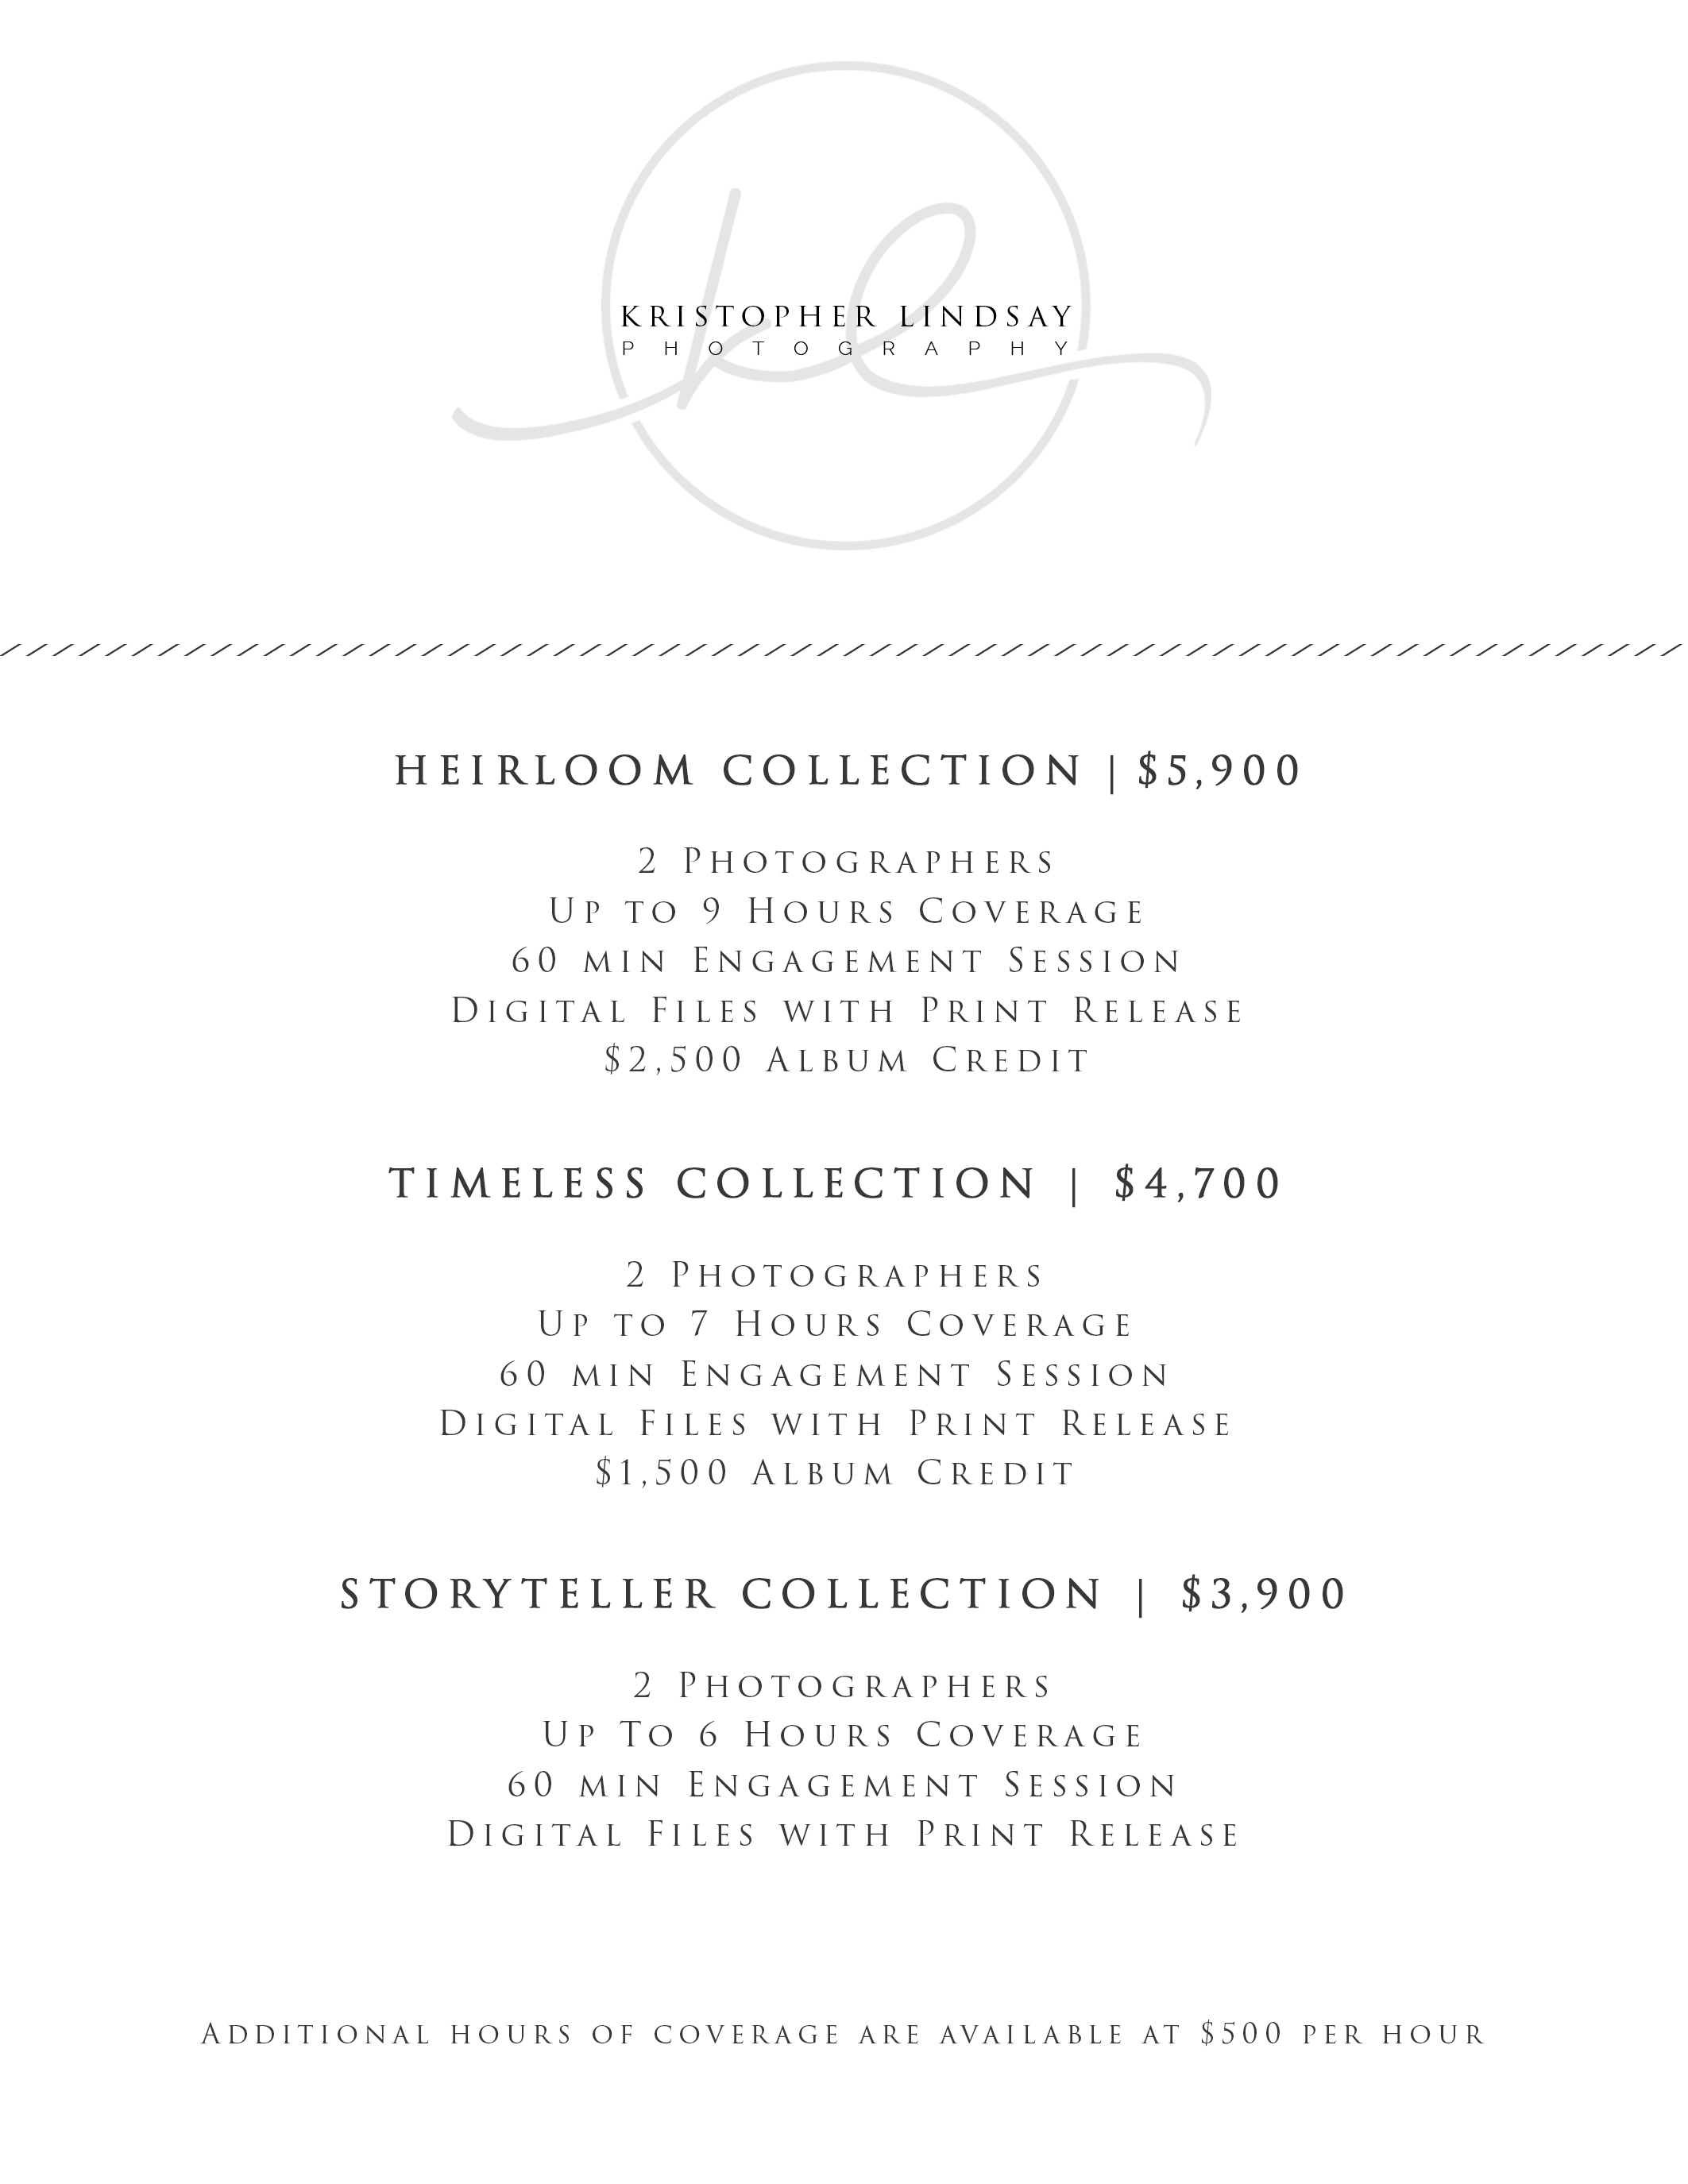 Kristopher Lindsay Collection Pricing 2018.jpg